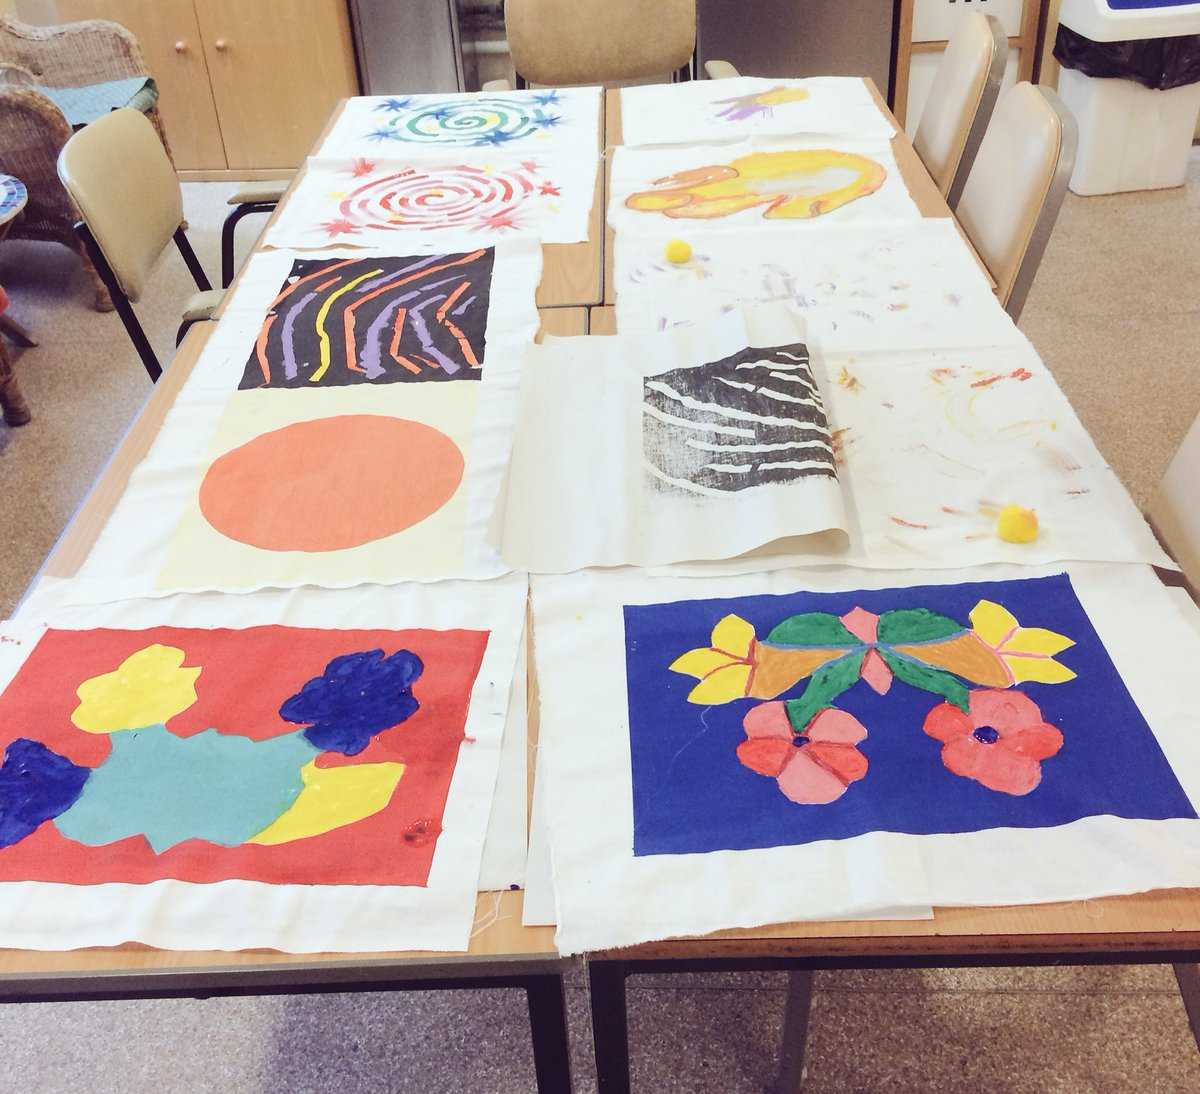 A riot of colours, styles and stories made these (soon to be) tote bags & cushion covers! What a joyful sight. Happy #creativityandwellbeingweek to everyone from all of us here at @BenUriGallery!